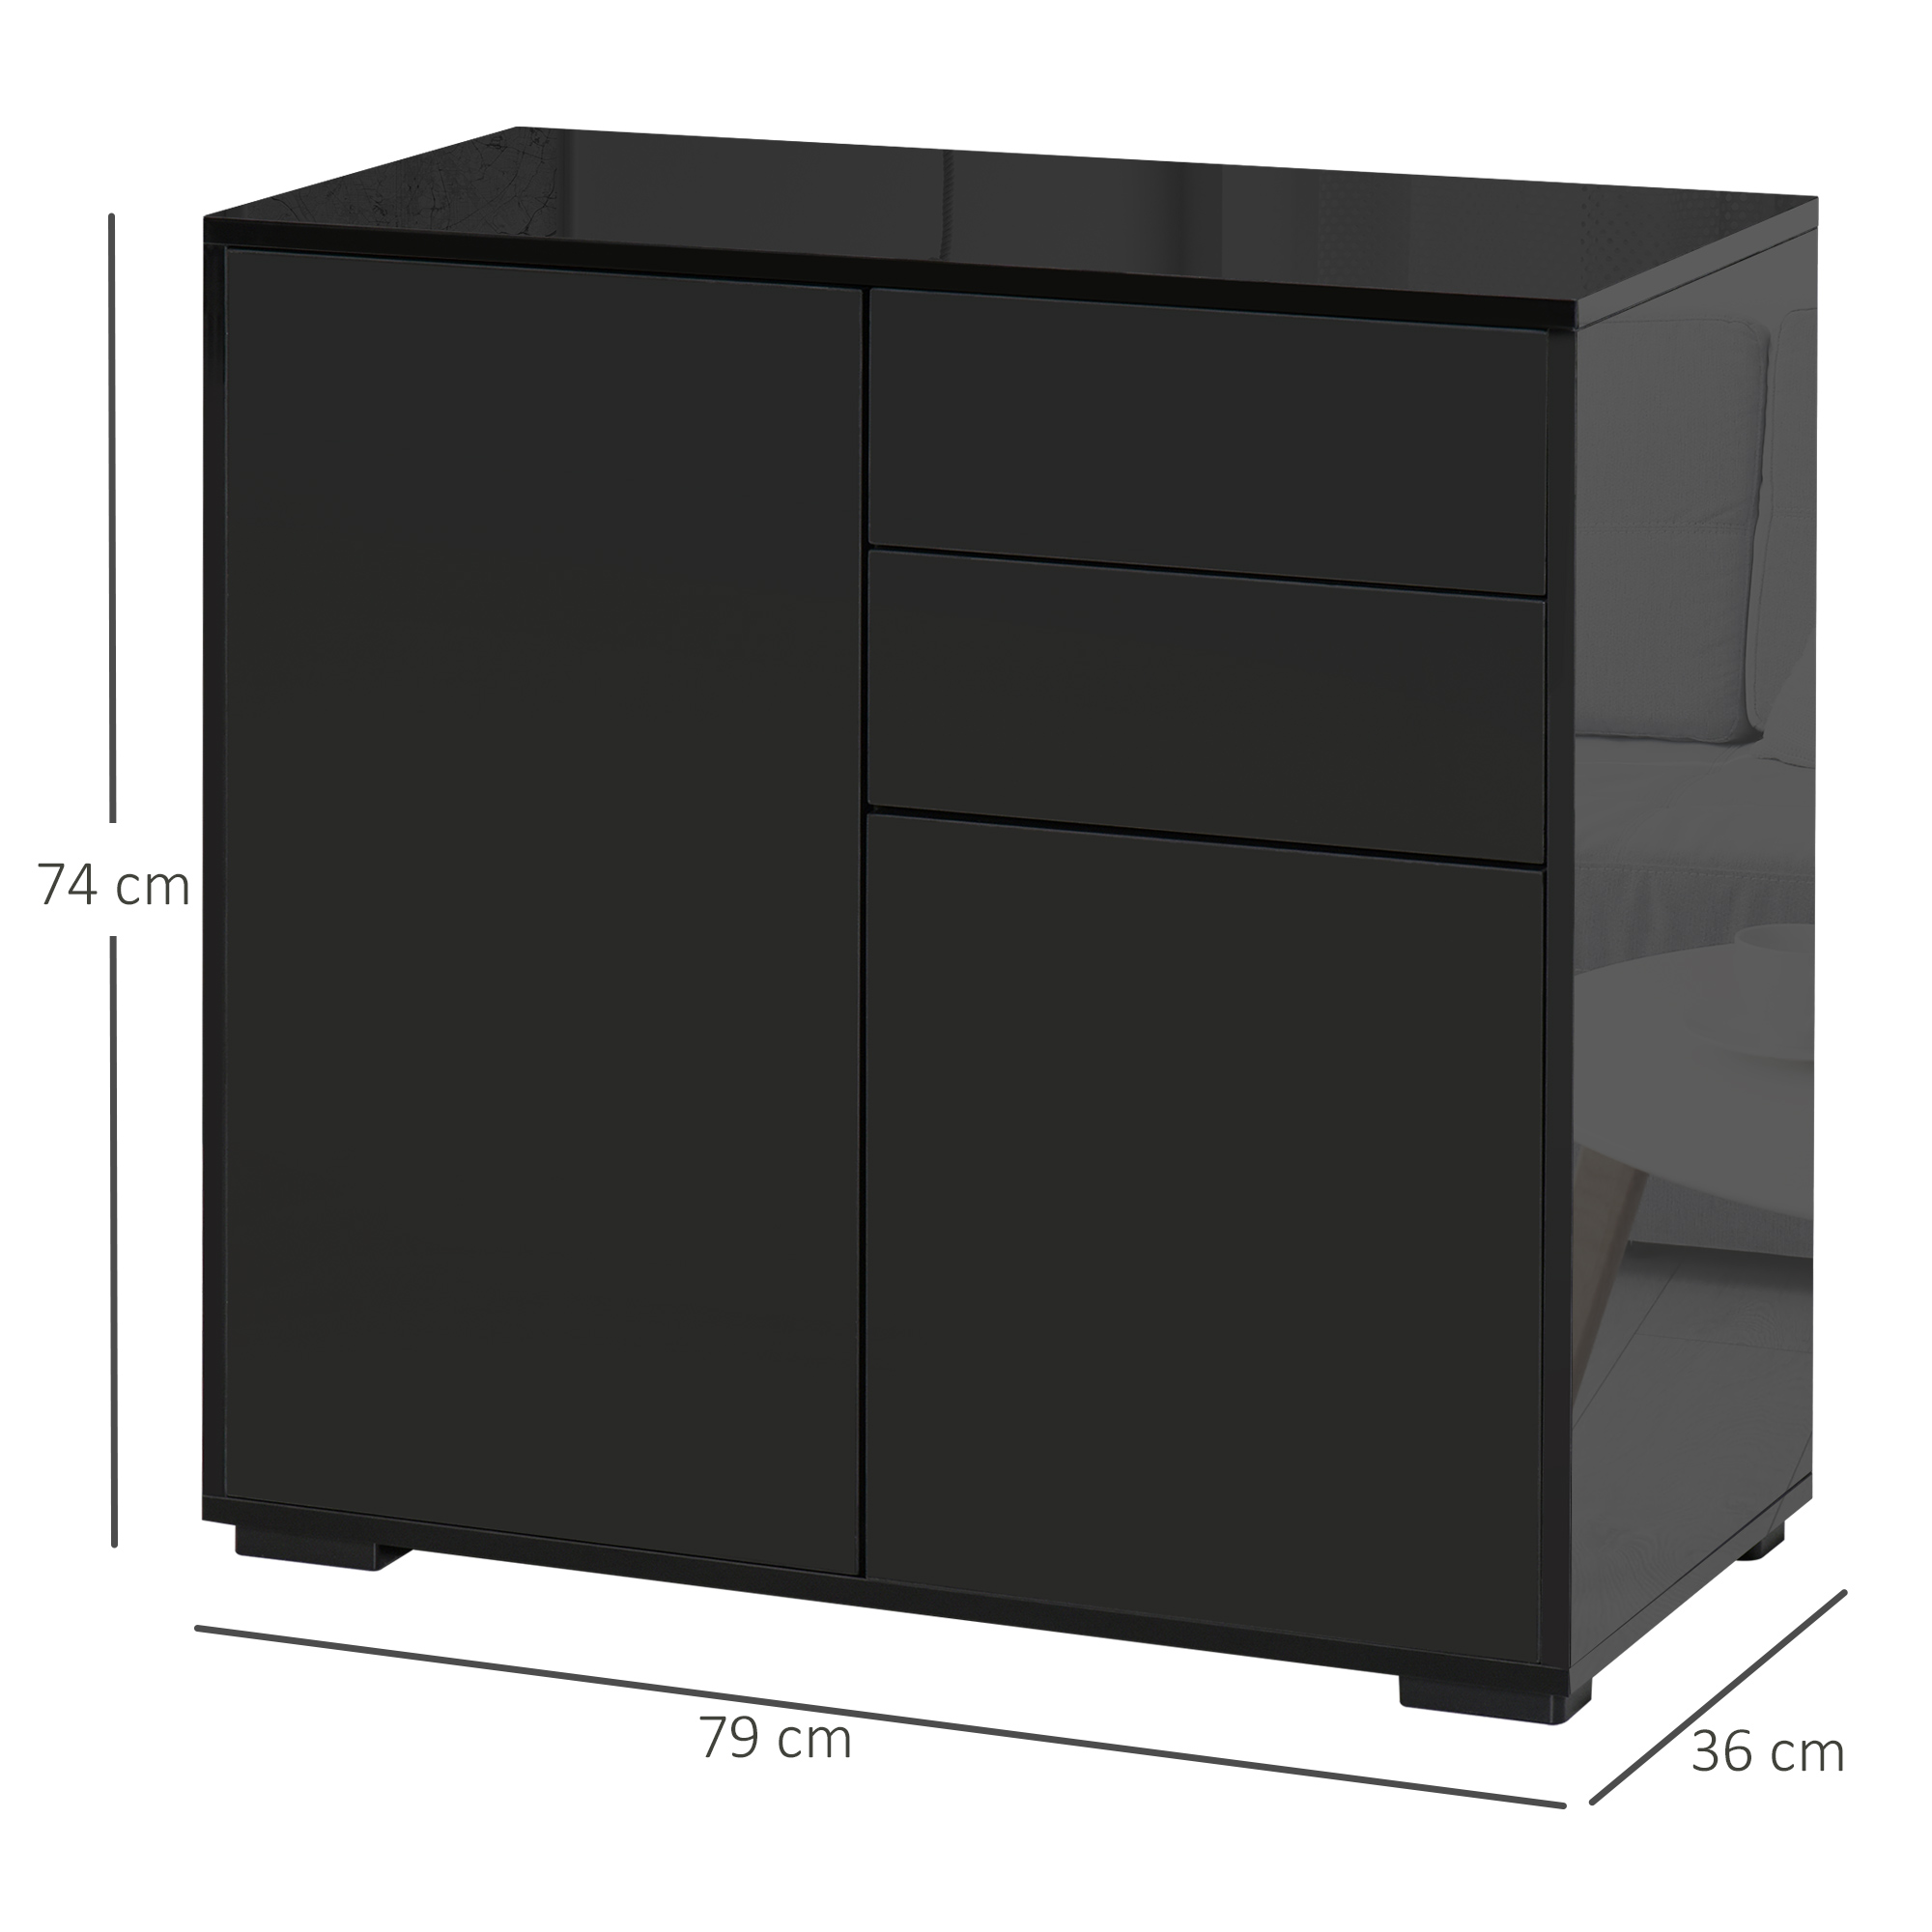 thumbnail 3 - Push-Open Side Cabinet with 2 Drawer 2 Door Cabinet for Home Office